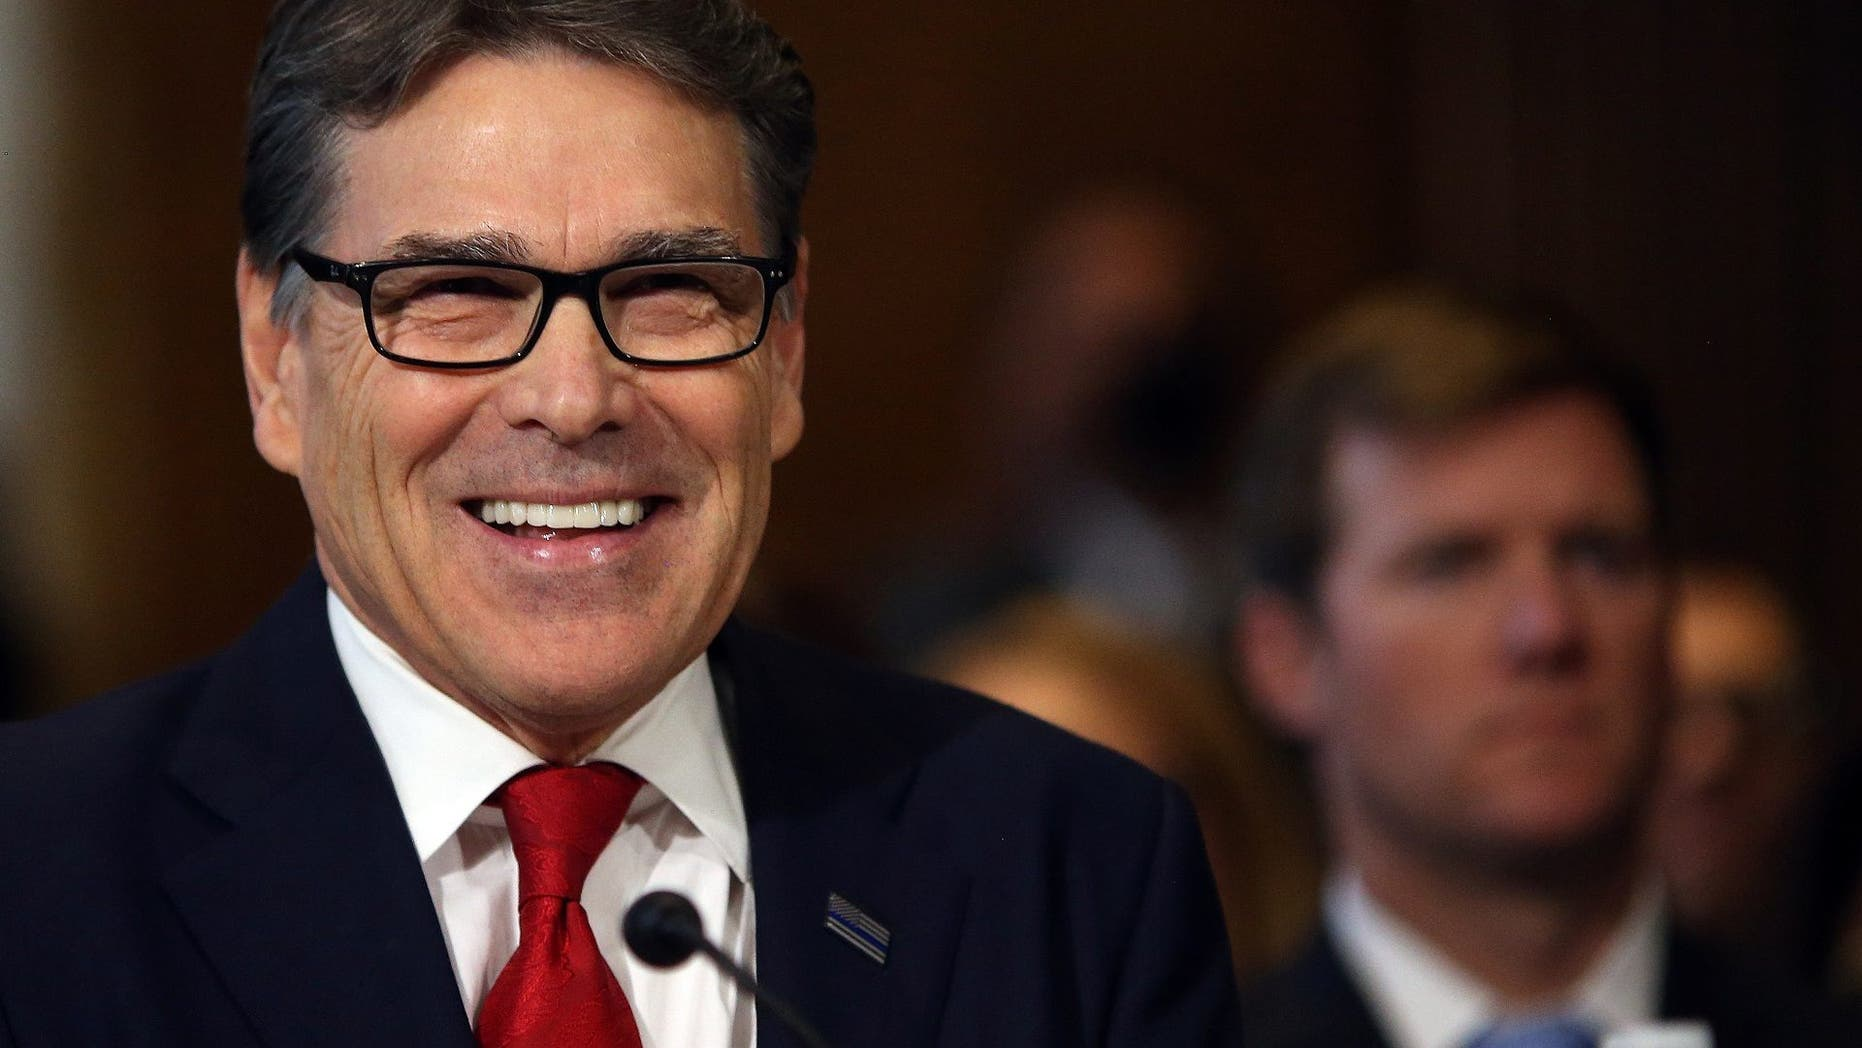 Rick Perry is one of Trump's Cabinet members.